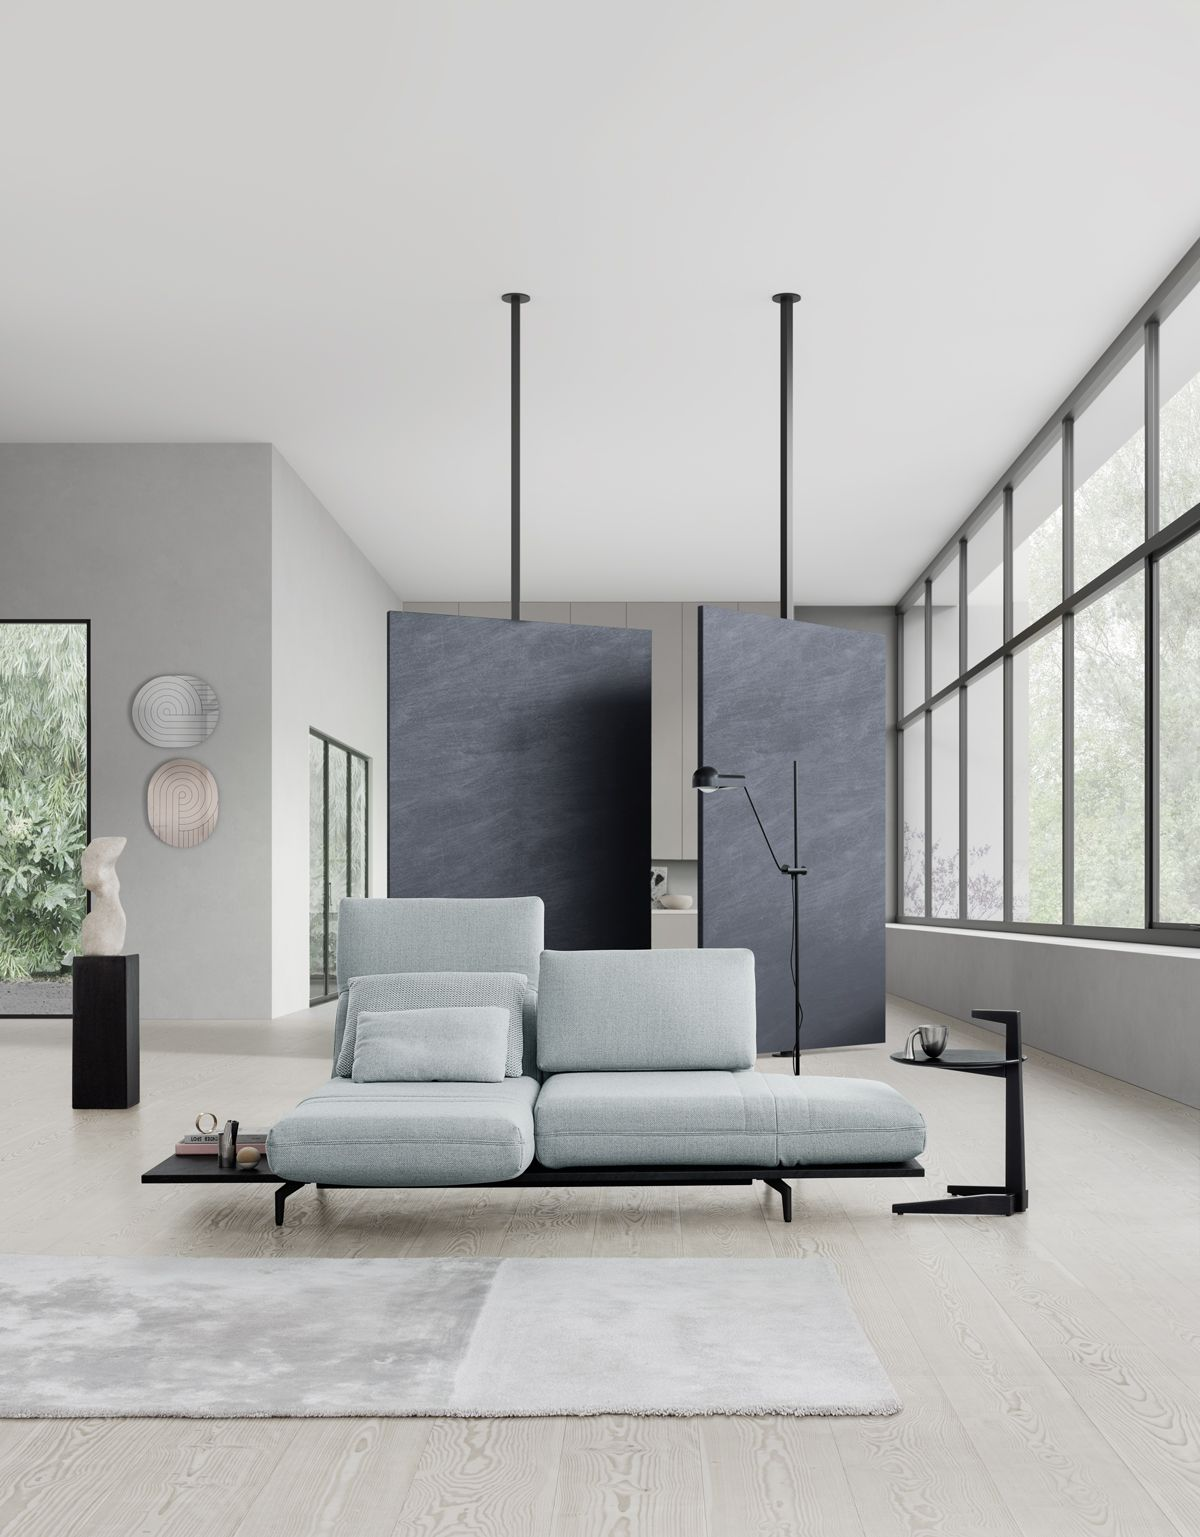 New For The Now The Rolf Benz Aura Sofa With Its Flexibility And Adaptability The New Rolf Benz Aura Sofa Range Fits Perfectly Int Aura Sofa Home Furniture